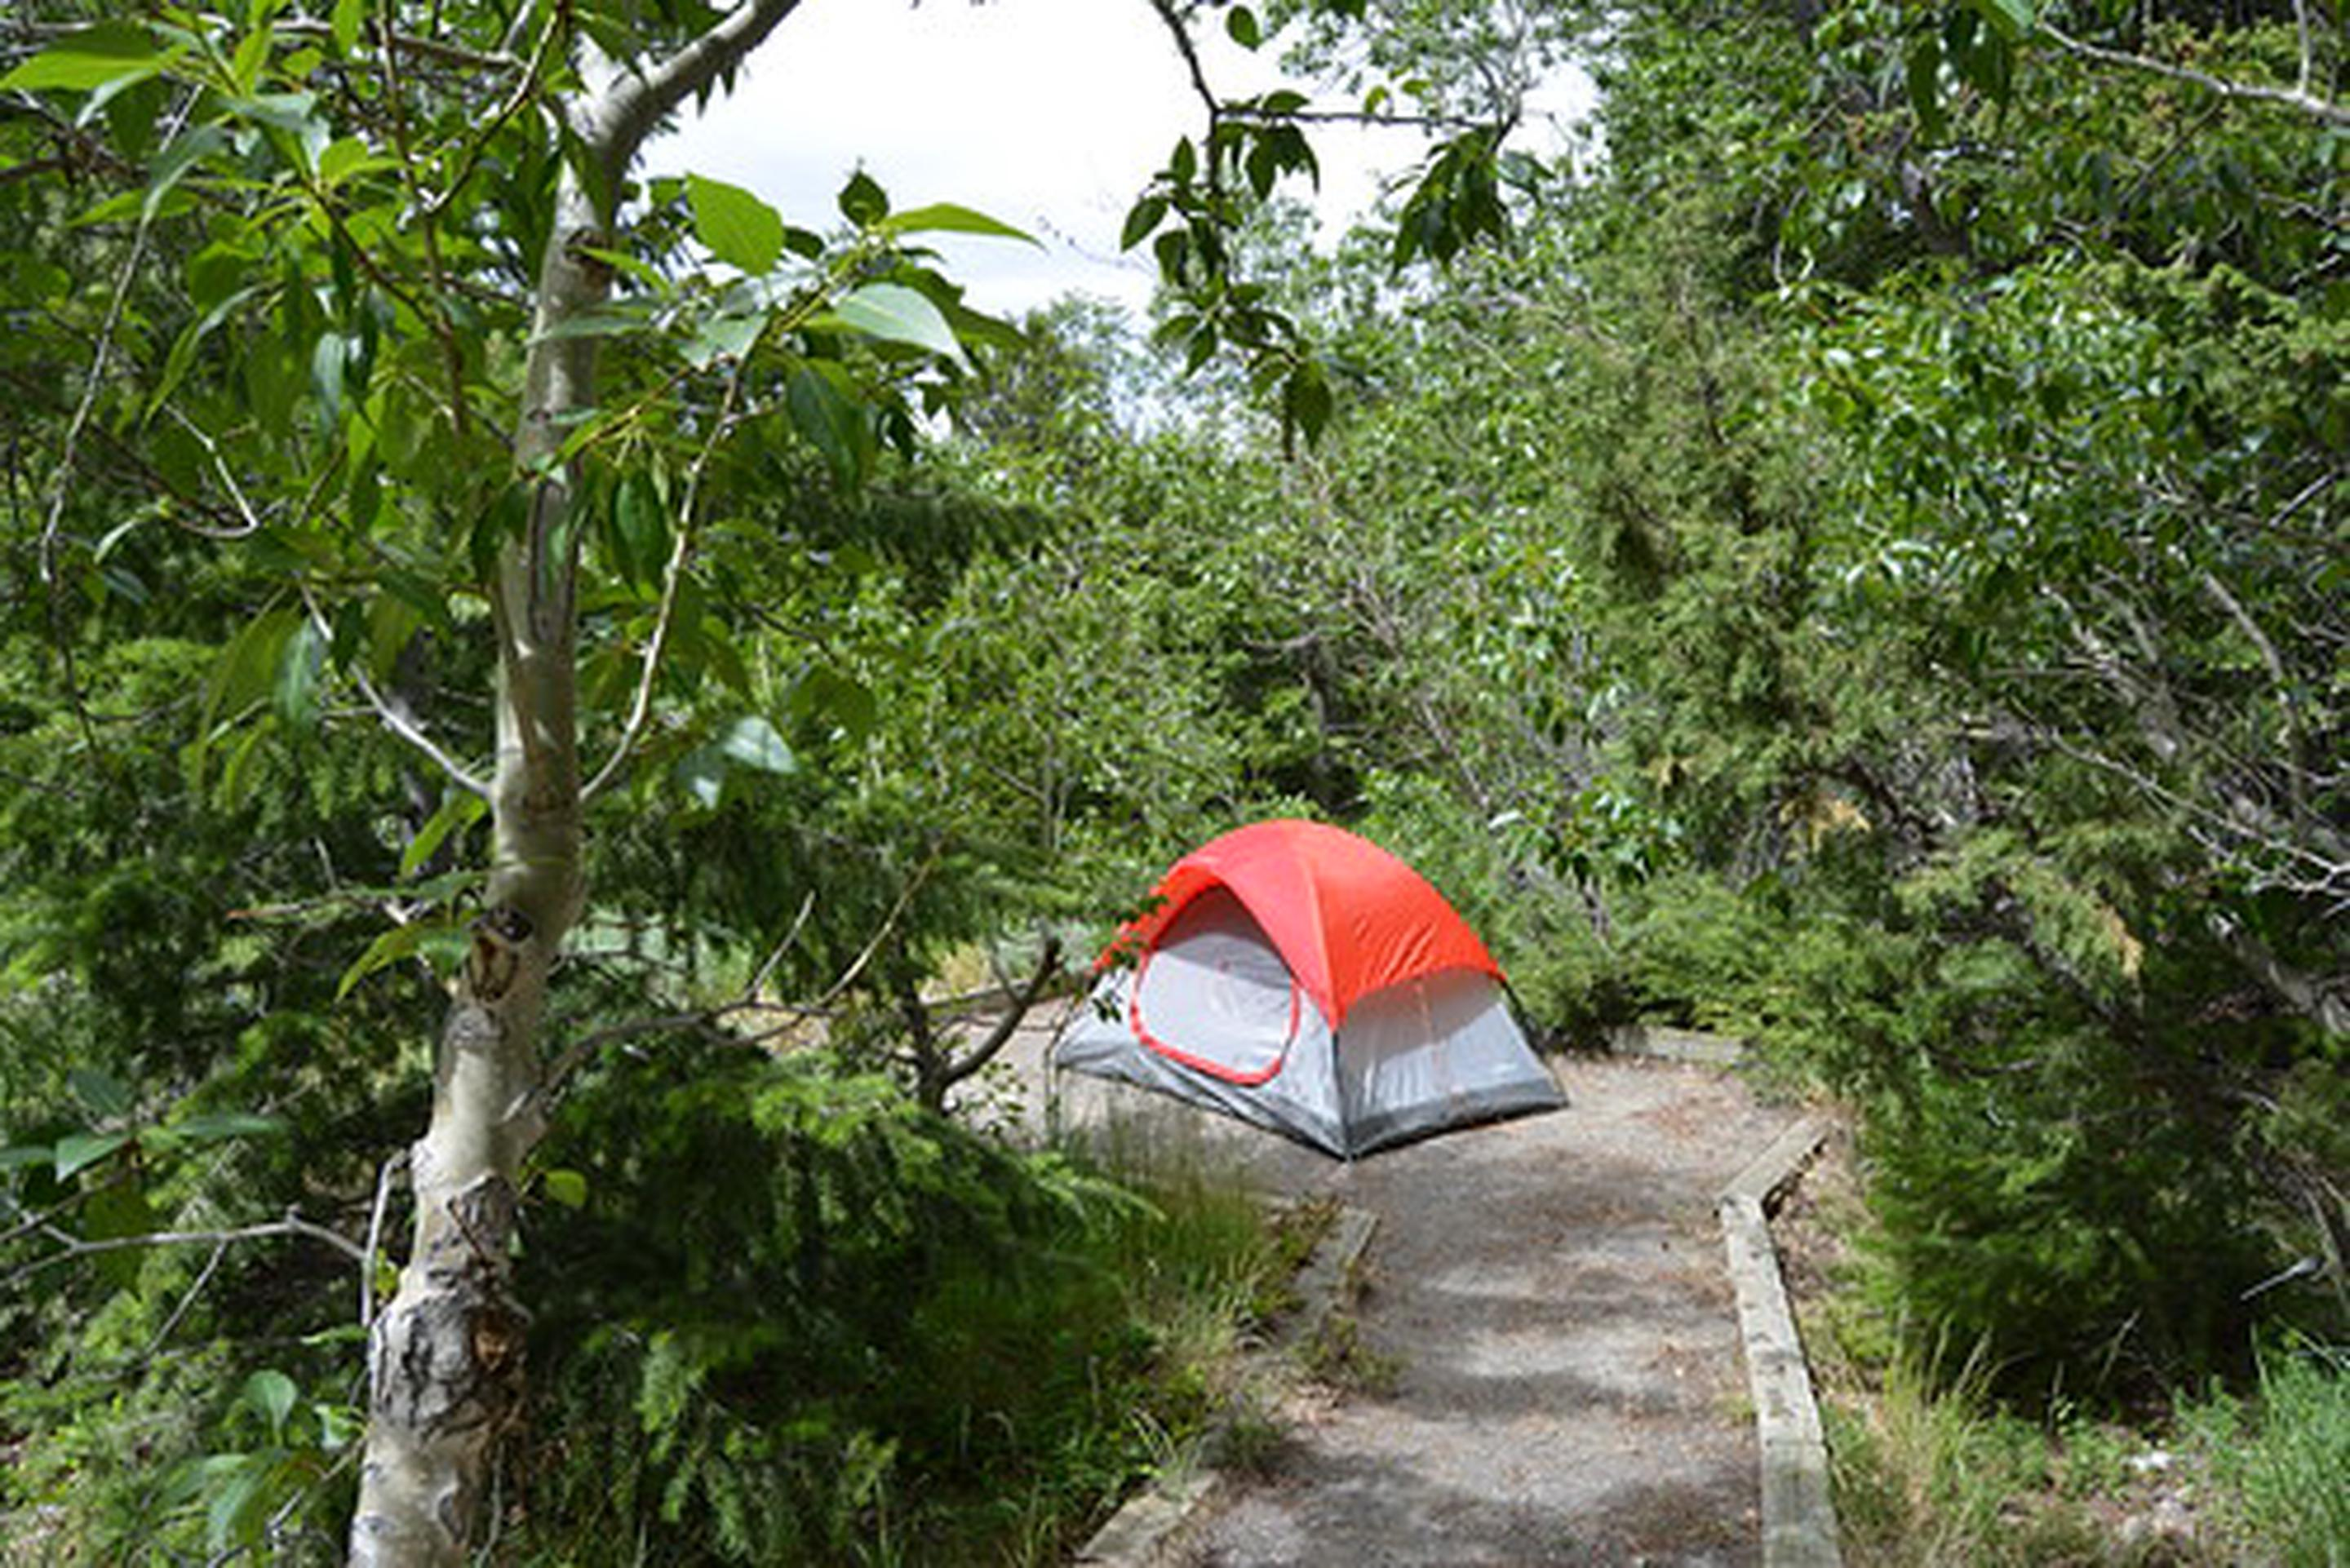 Photo of campsite with tent